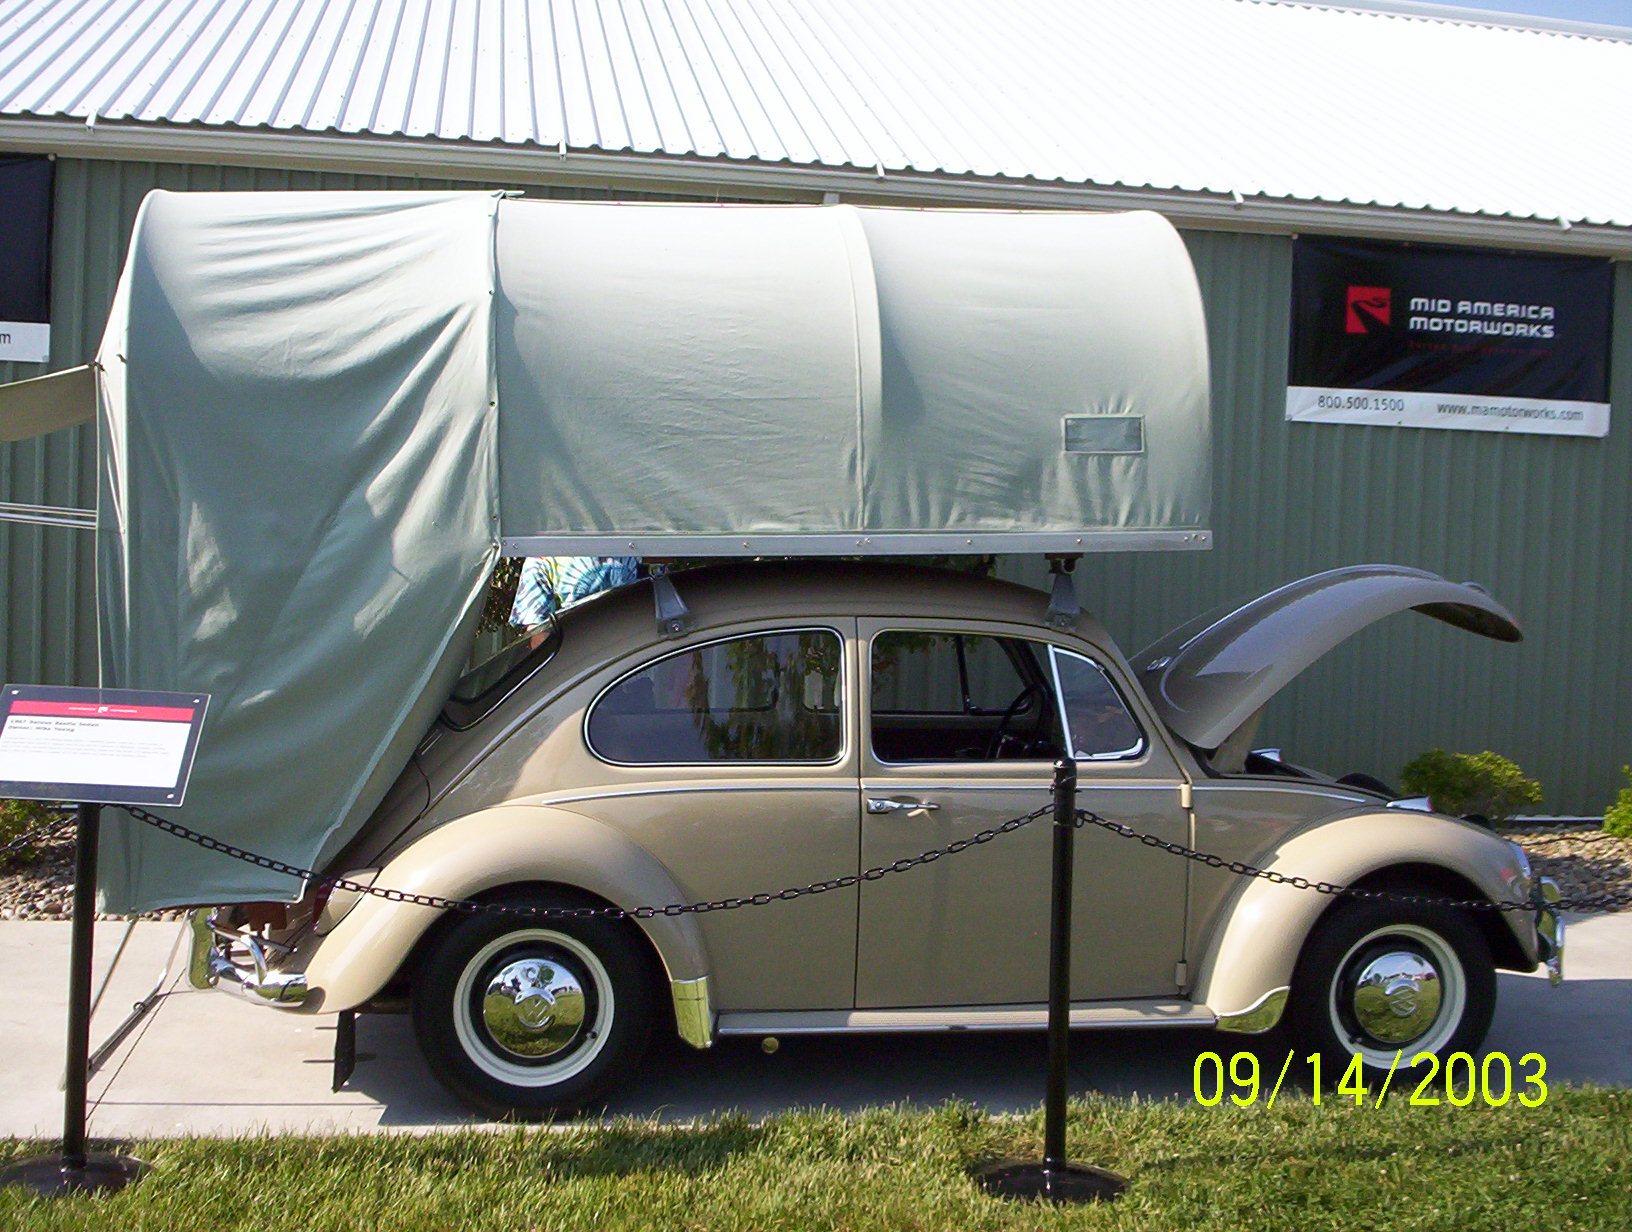 Carbak Cartop Tent C&er on a Beetle from Starling Travel & Starling Travel » The CarBak Cartop Tent Camper